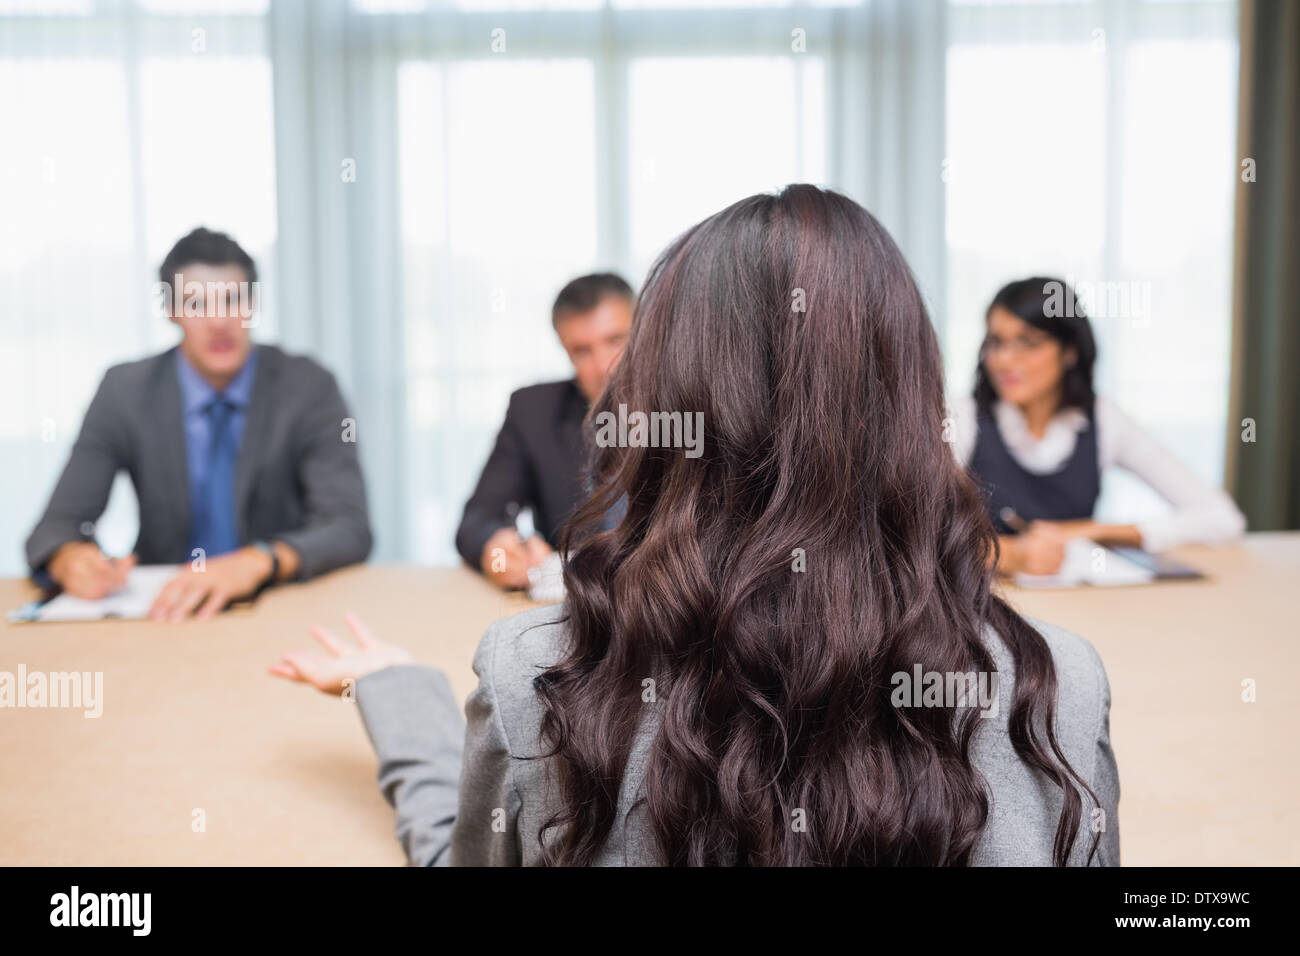 interviewee talking to the panel stock photo royalty image interviewee talking to the panel